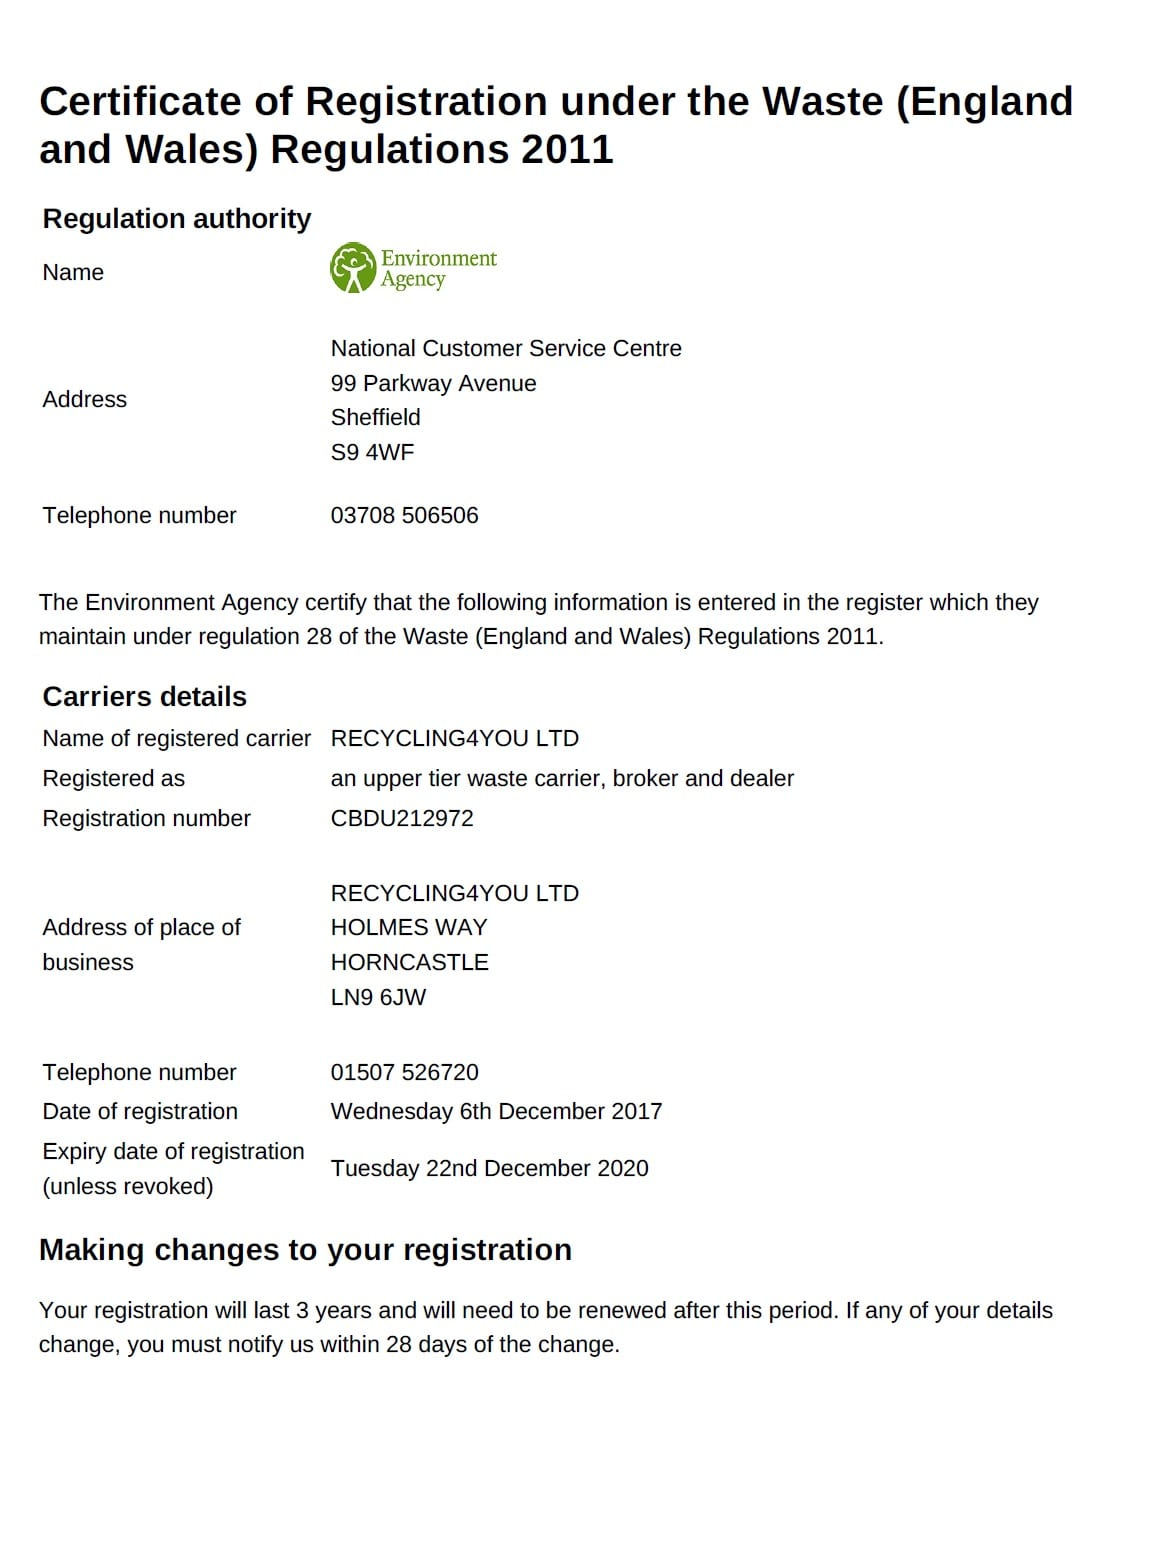 carriers_licence_2020 - Recycling4You